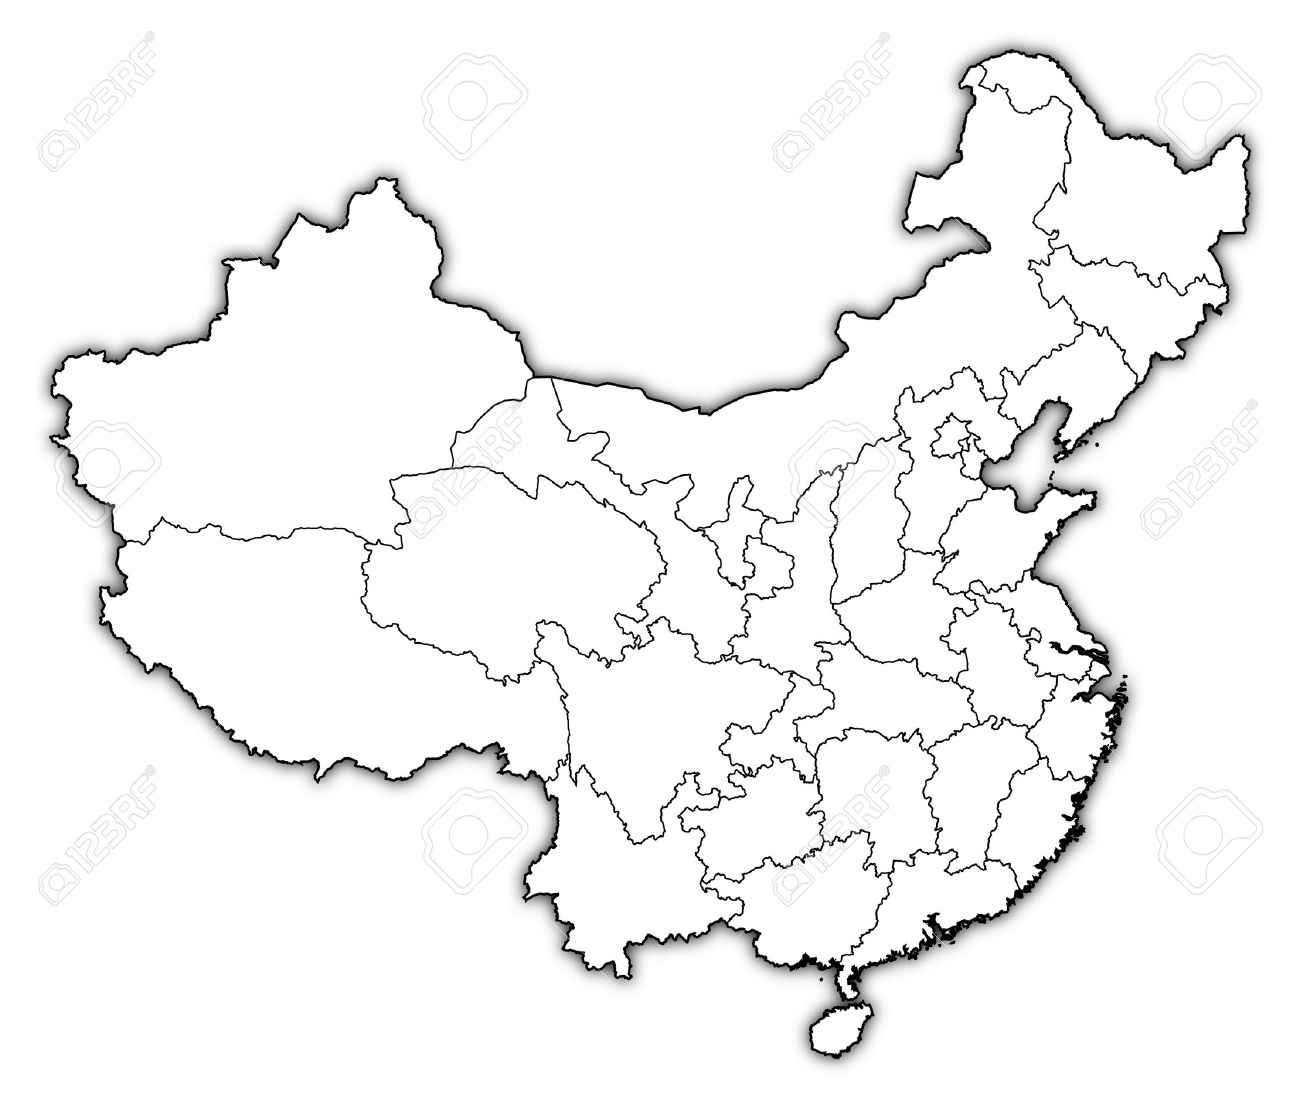 Province Of China Clipart 20 Free Cliparts